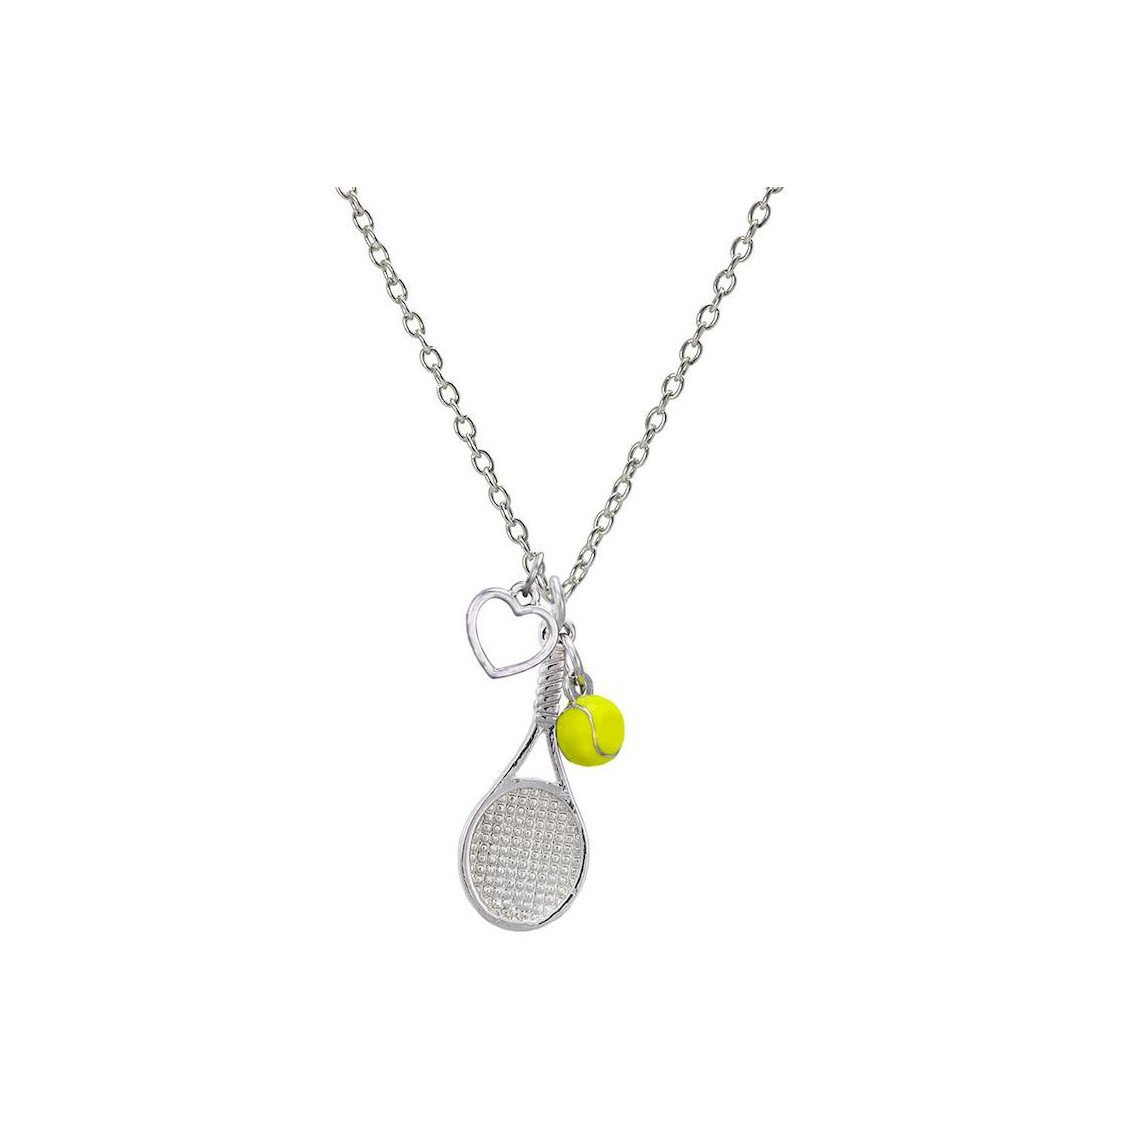 Tennis necklace consisting of pendant with tennis racket, yellow ball & heart